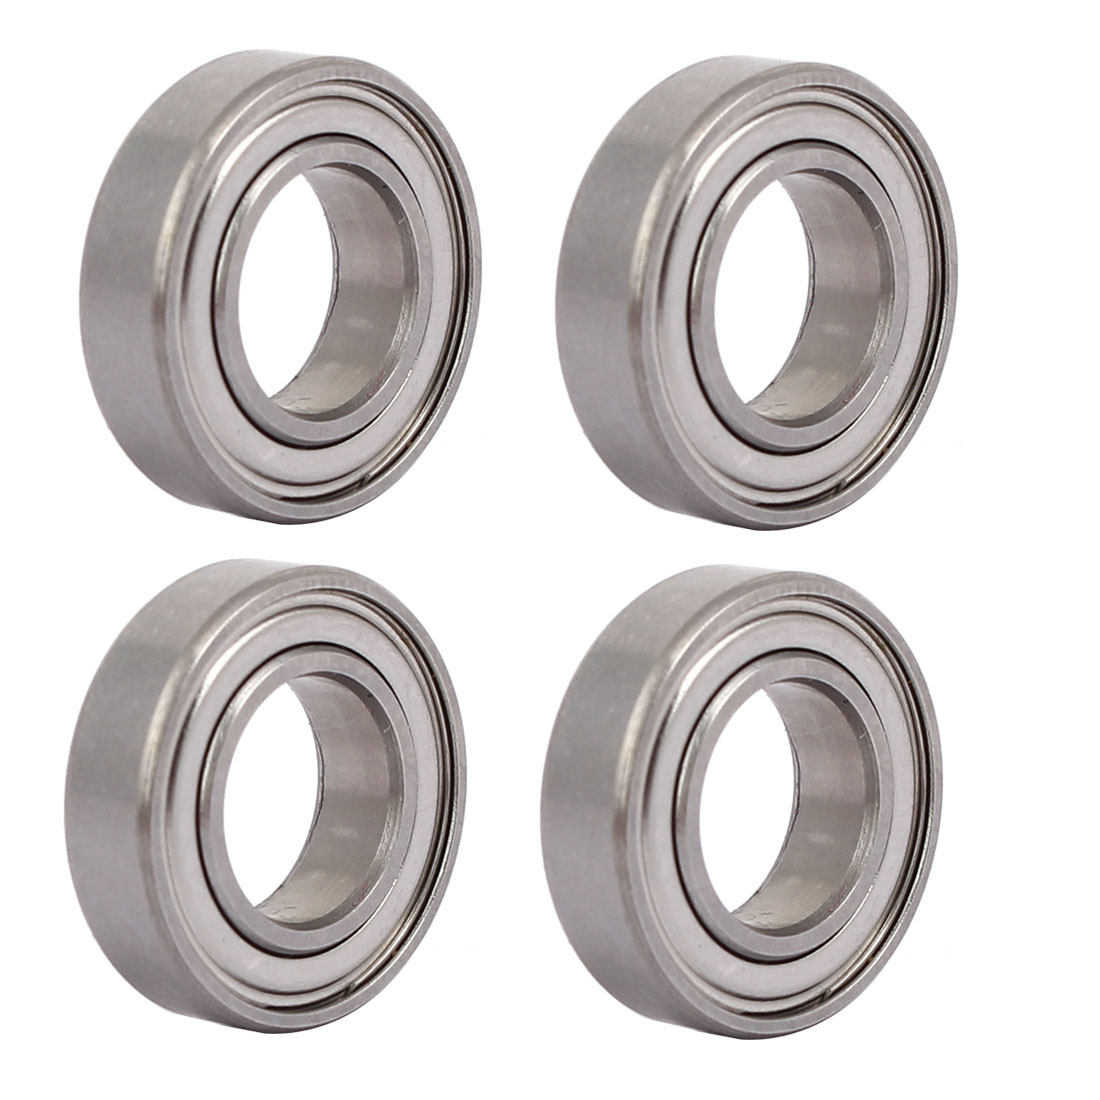 19mmx10mmx5mm 6800 Stainless Steel Shielded Deep Groove Ball Bearing 4pcs